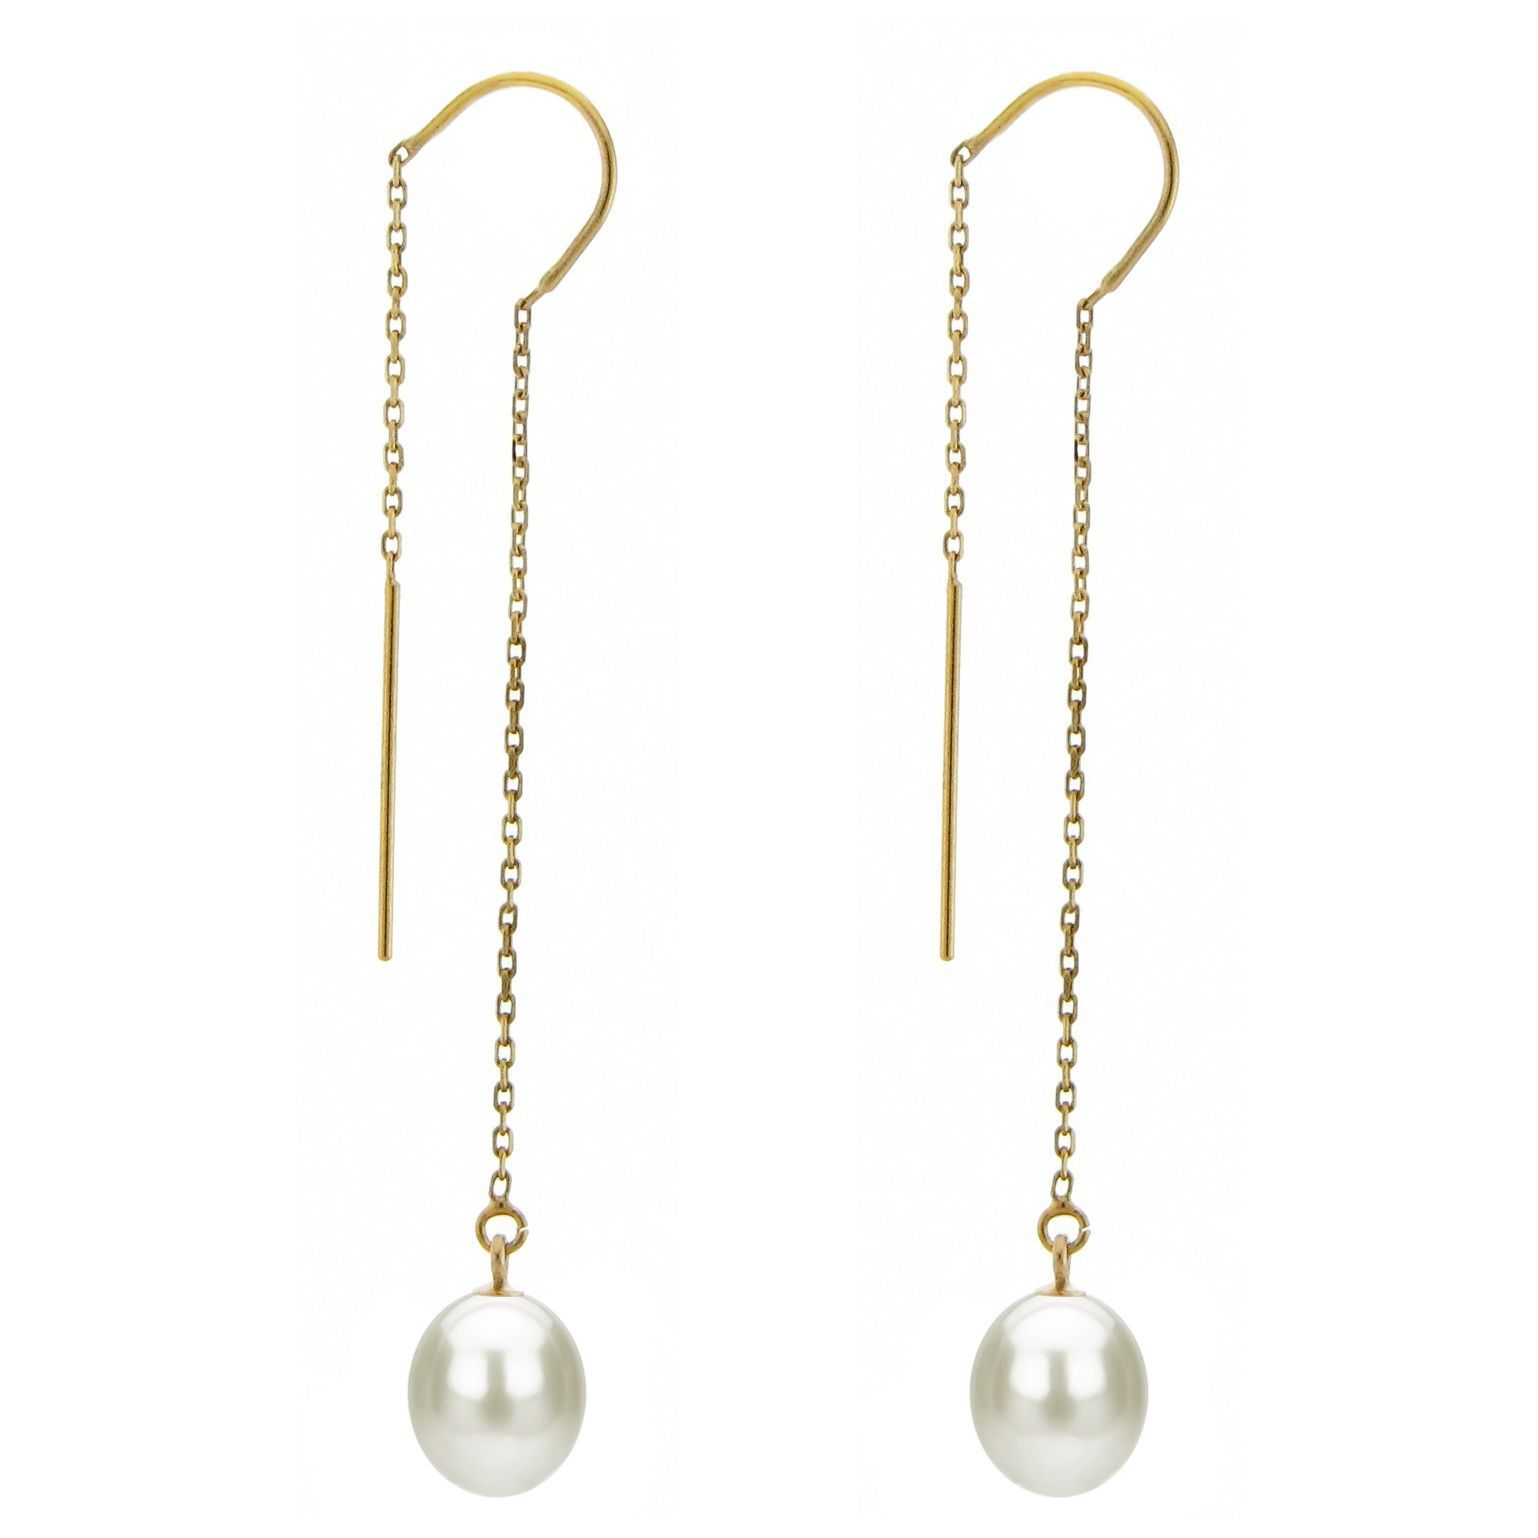 DaVonna 14k Yellow Gold 78mm White Cultured Freshwater